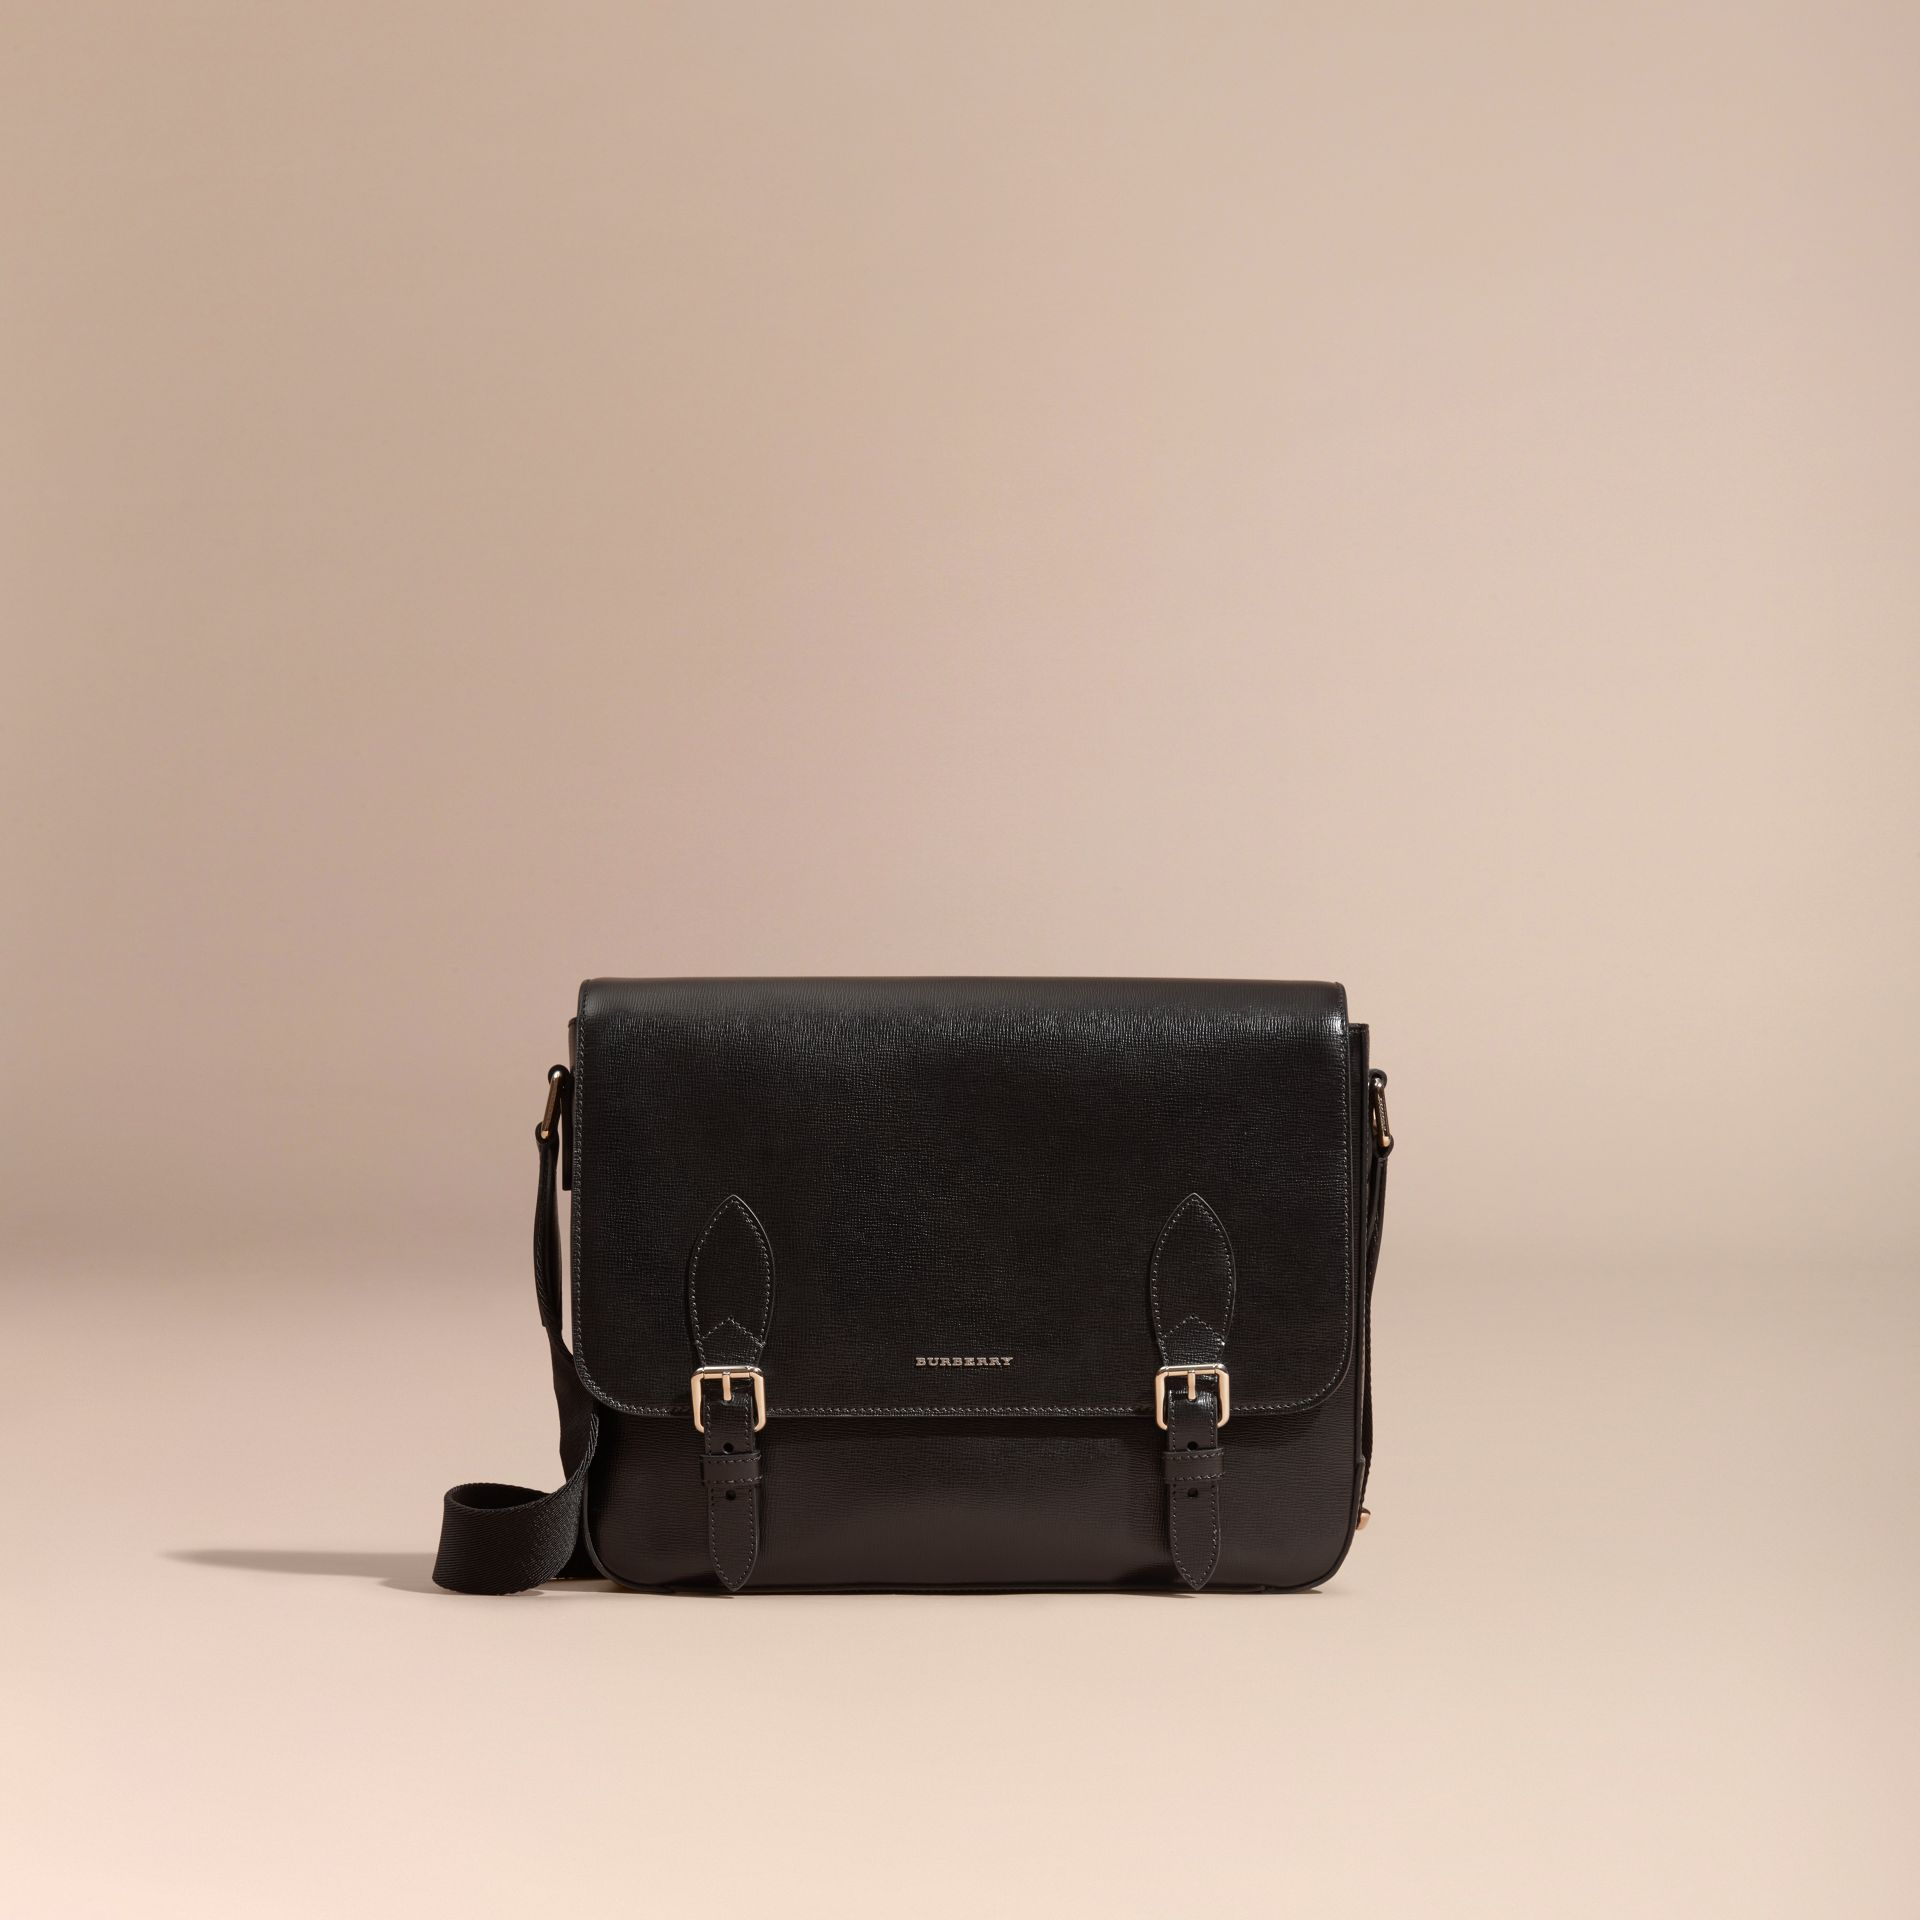 Medium London Leather Messenger Bag in Black - gallery image 8